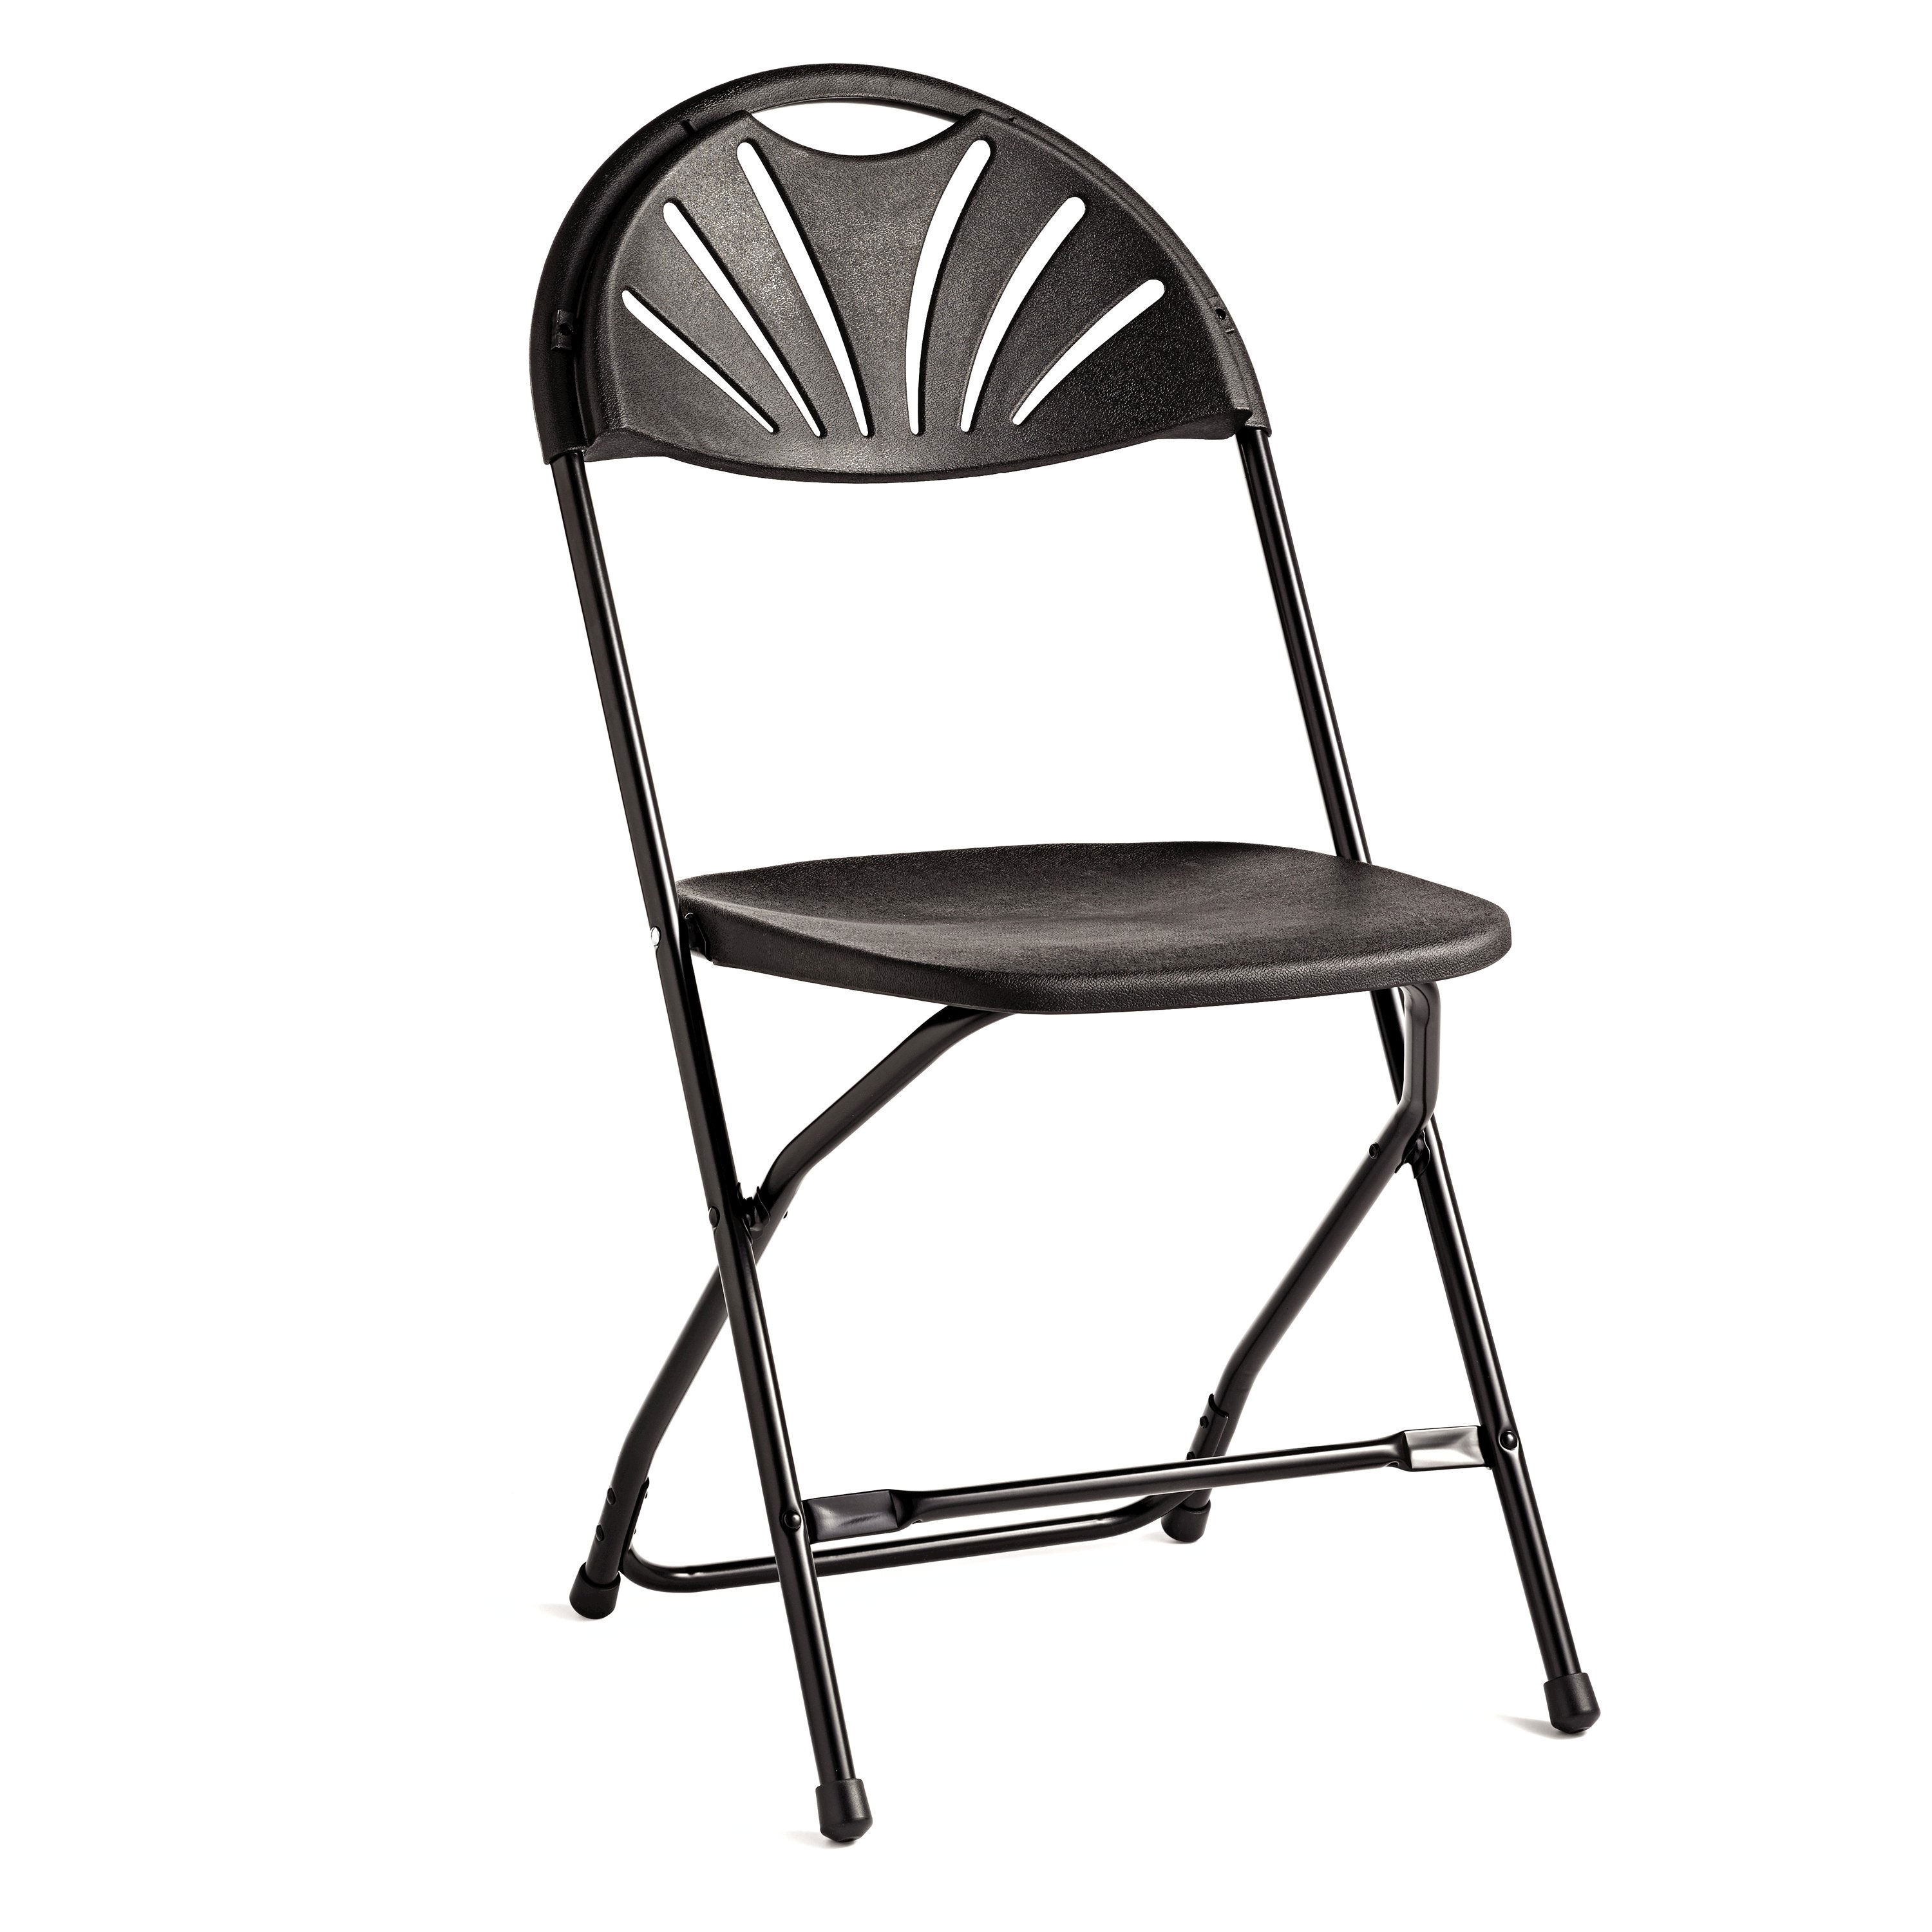 Samsonite 2000 Series Injection Mold Fanback Folding Chair (Case/10)